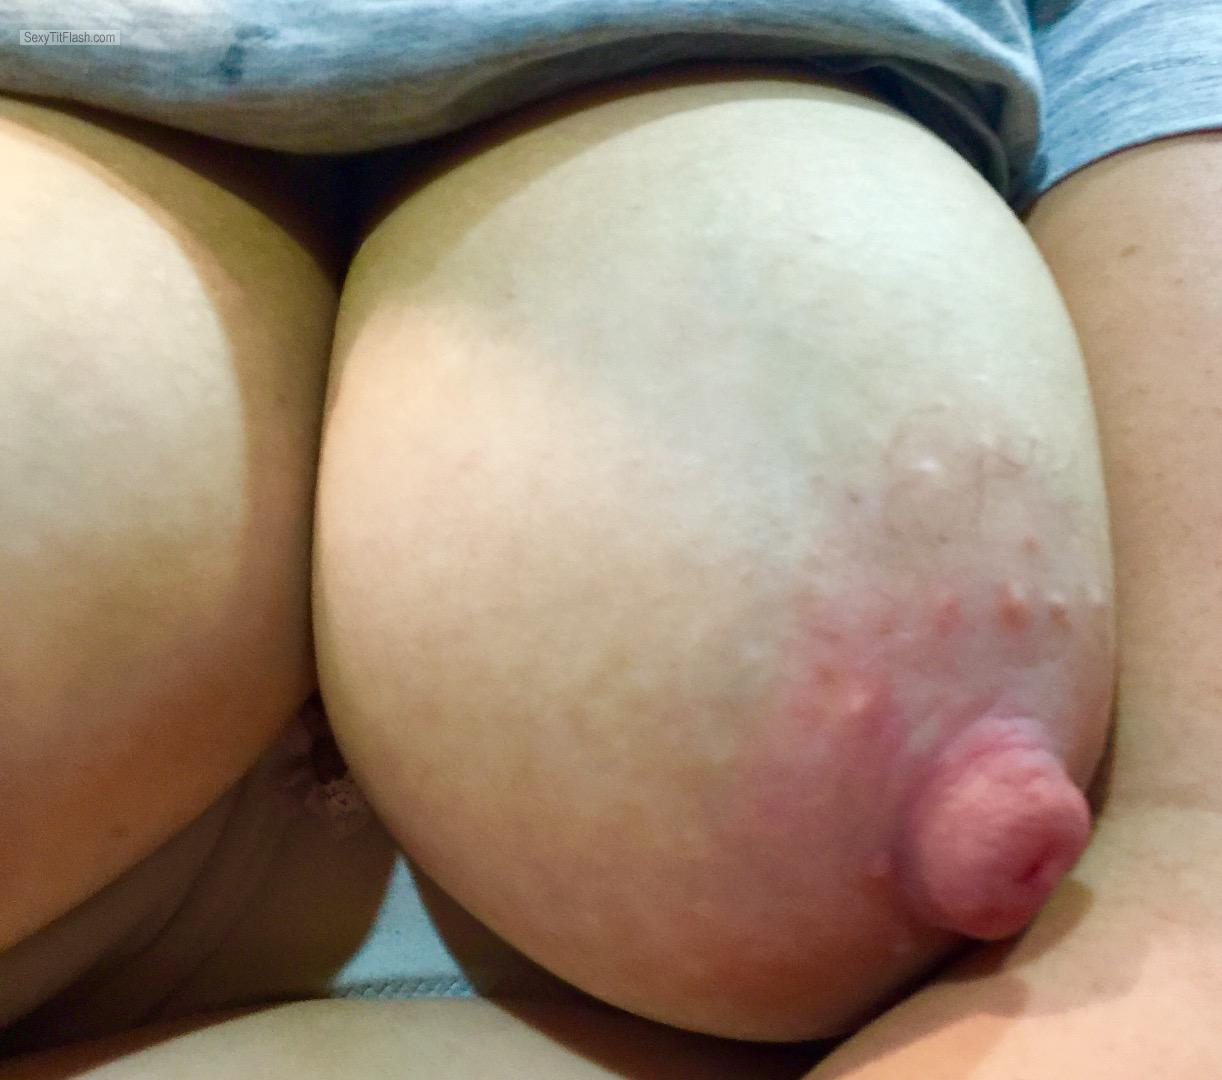 Tit Flash: My Big Tits - Milf Tits from United Kingdom